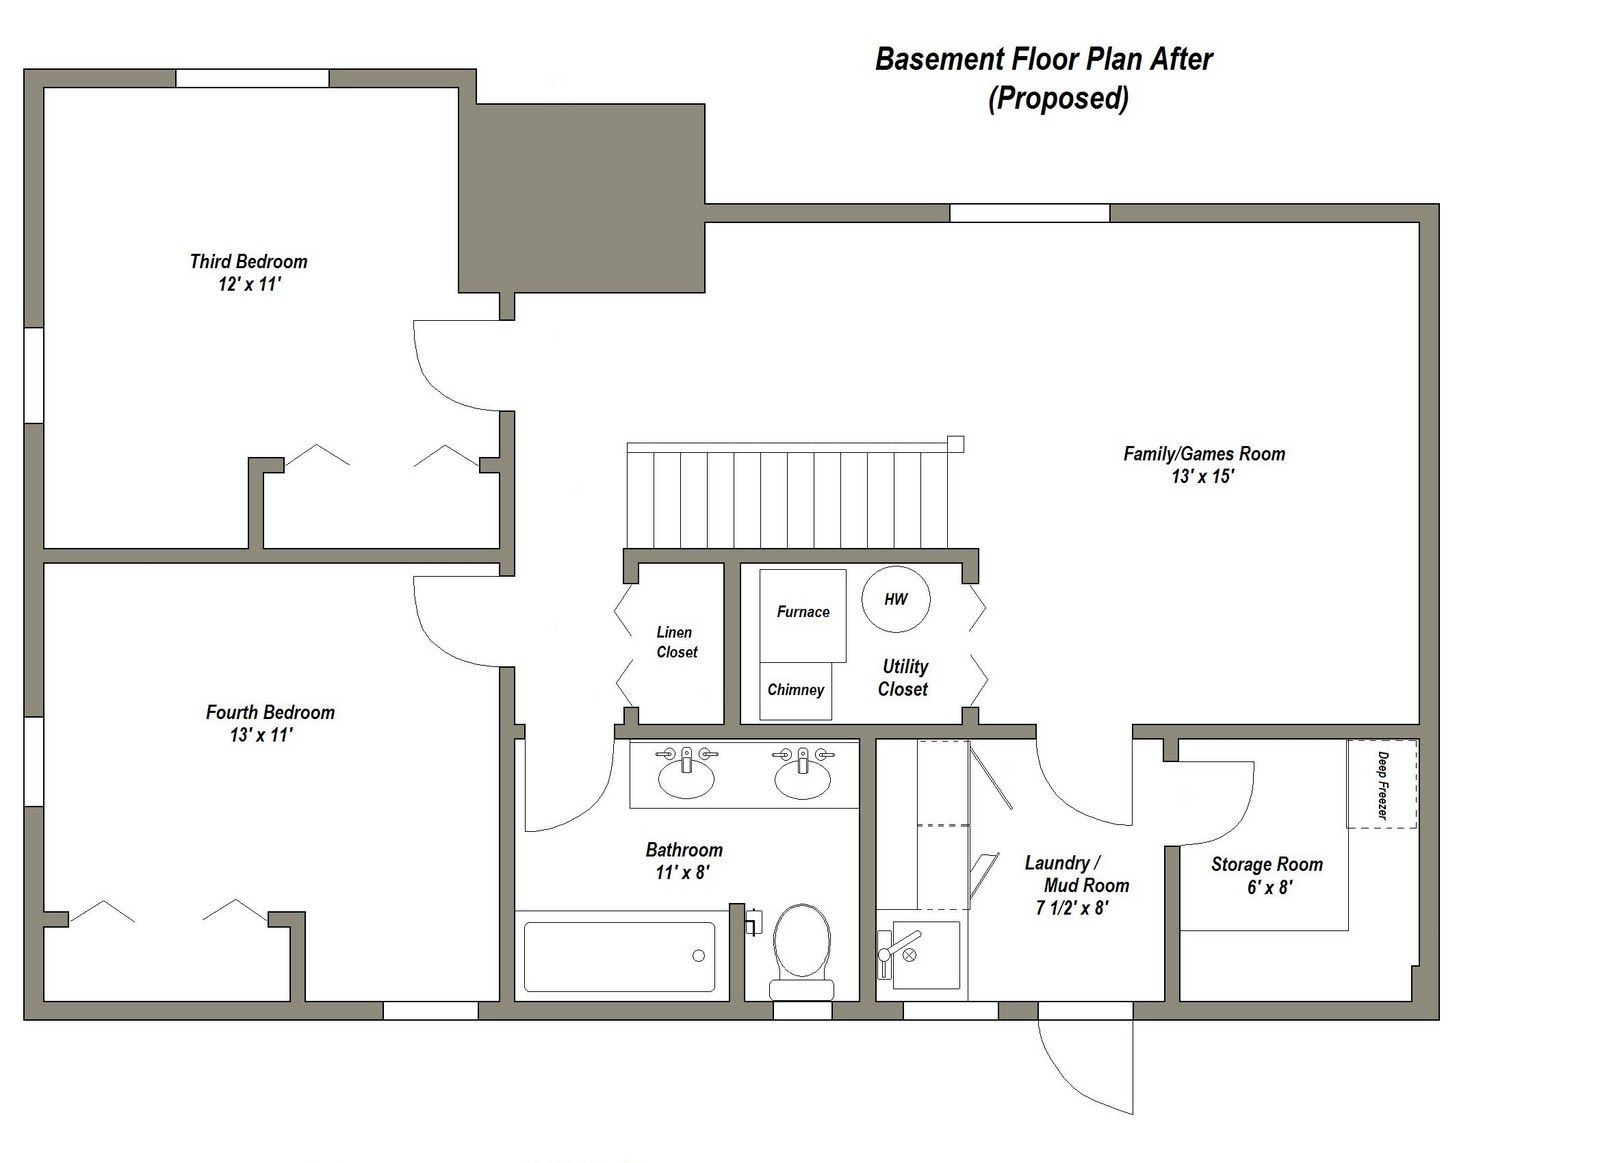 Finished Basement Floor Plans | finished-basement-floor-plans-younger-unger- house-the-plan-27282.jpg  sc 1 st  Pinterest & Finished Basement Floor Plans | finished-basement-floor-plans ...